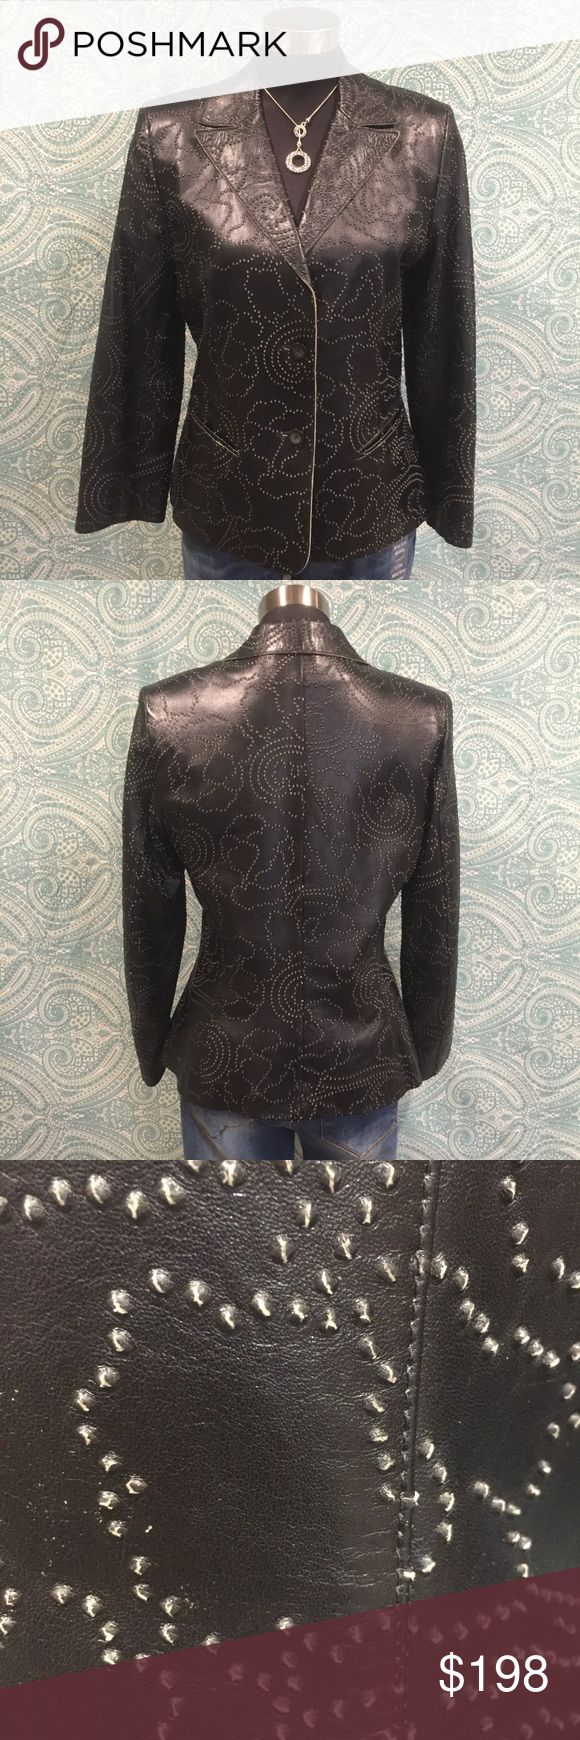 🔥STUNNING ITALIAN LEATHER JACKET 🔥 All eyes will be on you when you wear this GORGEOUSLY detailed buttery leather jacket. Marisa Minicucci Jackets & Coats